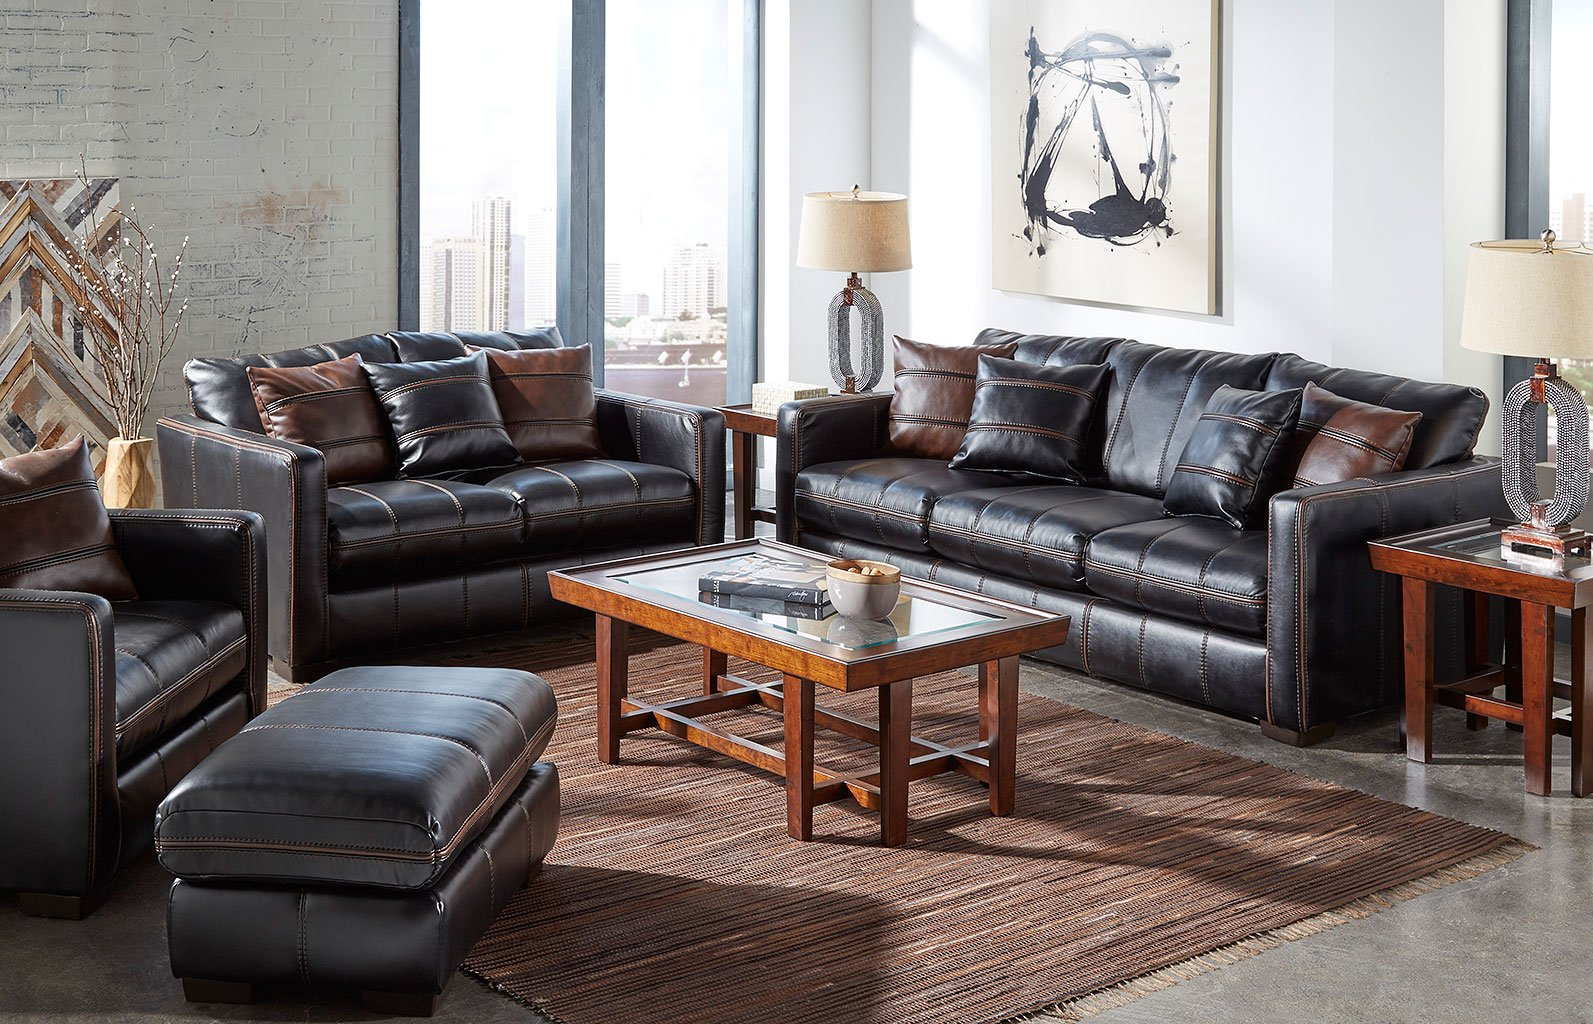 Tucker Living Room Set Black Living Room Furniture Living with regard to 12 Awesome Tricks of How to Make Black Leather Living Room Set